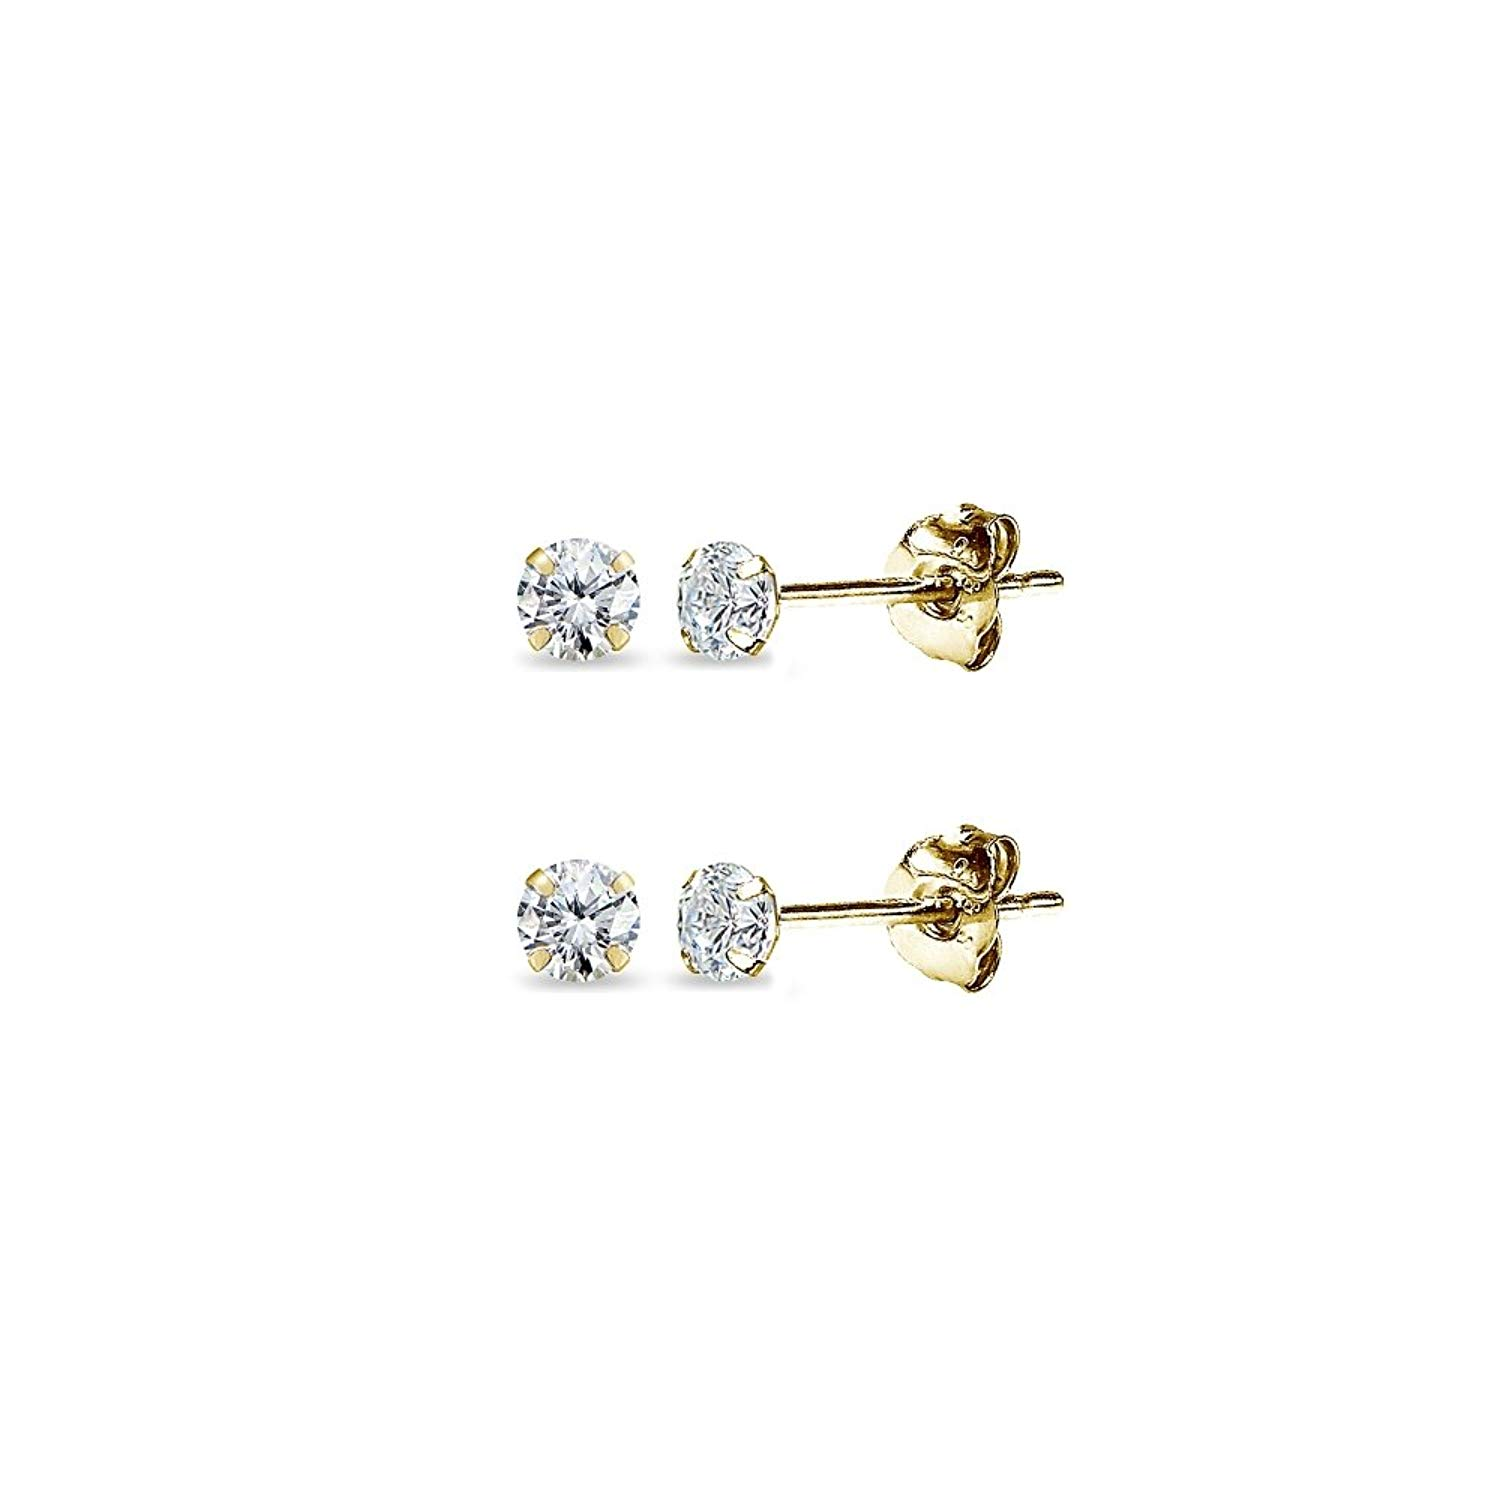 d0e63b001 Get Quotations · 2 Pair Set 14K Gold Cubic Zirconia Tiny 2mm Round Unisex Stud  Earrings for Men,